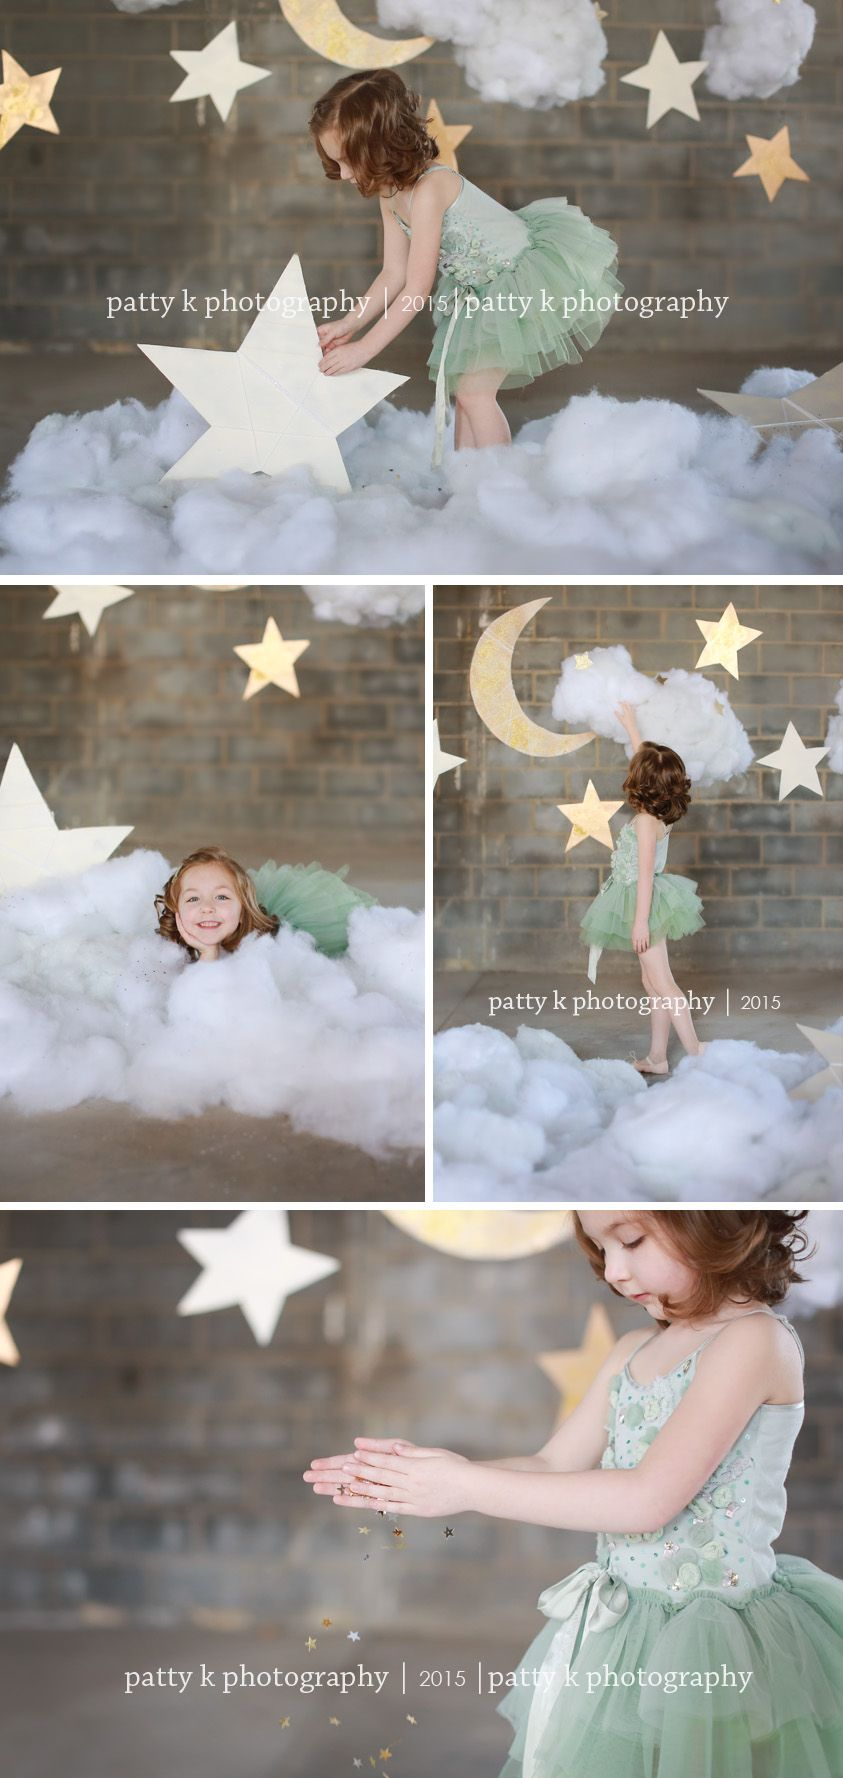 PattyKPhotography: Touching the Stars   Imagination Session   Greensboro, NC Child Photographer